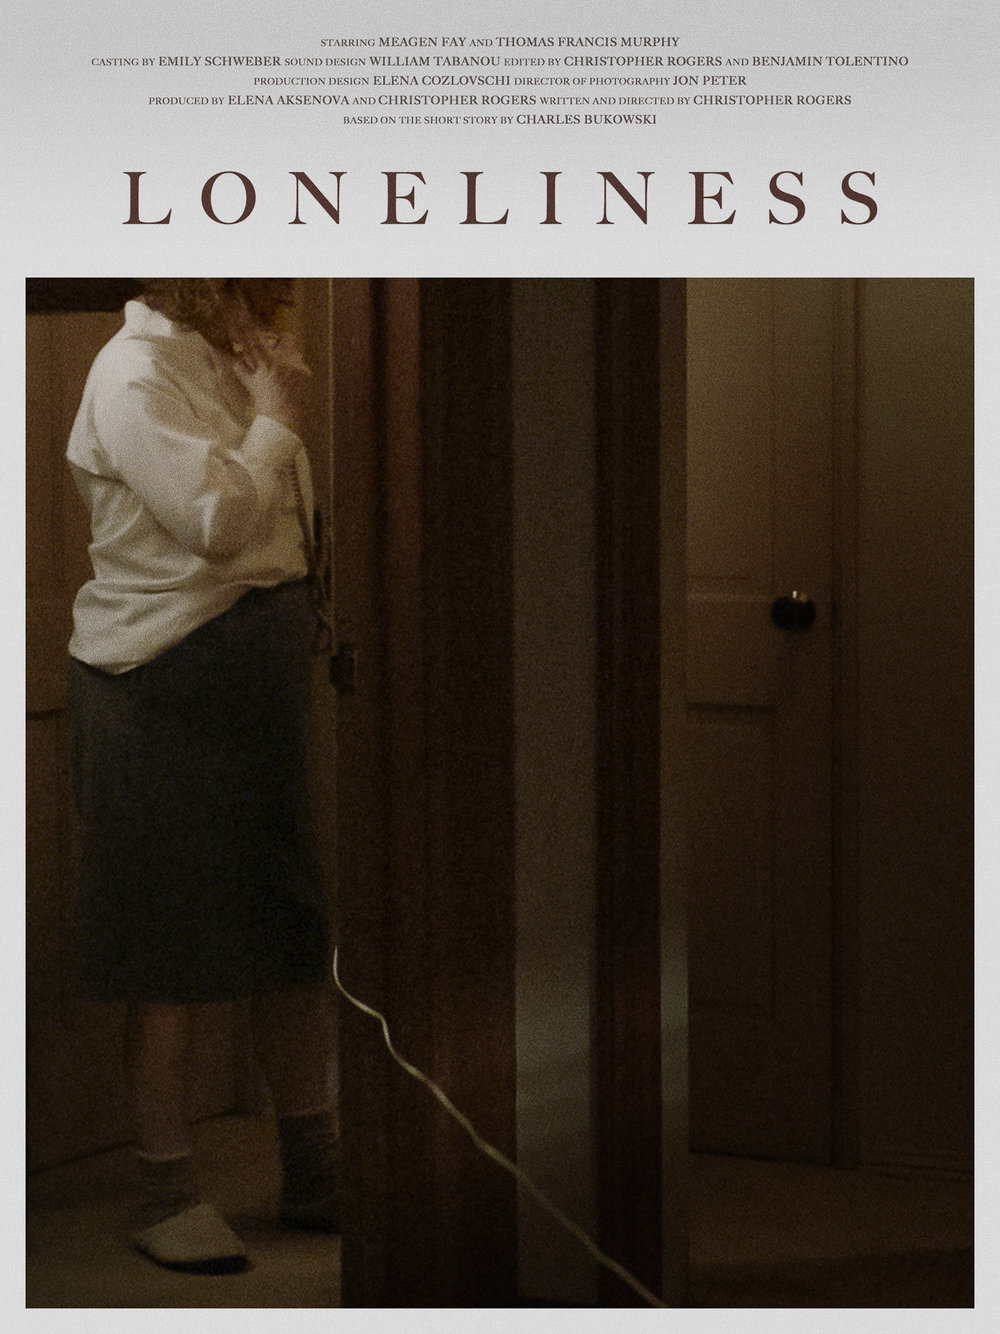 loneliness_poster_thumb.jpg